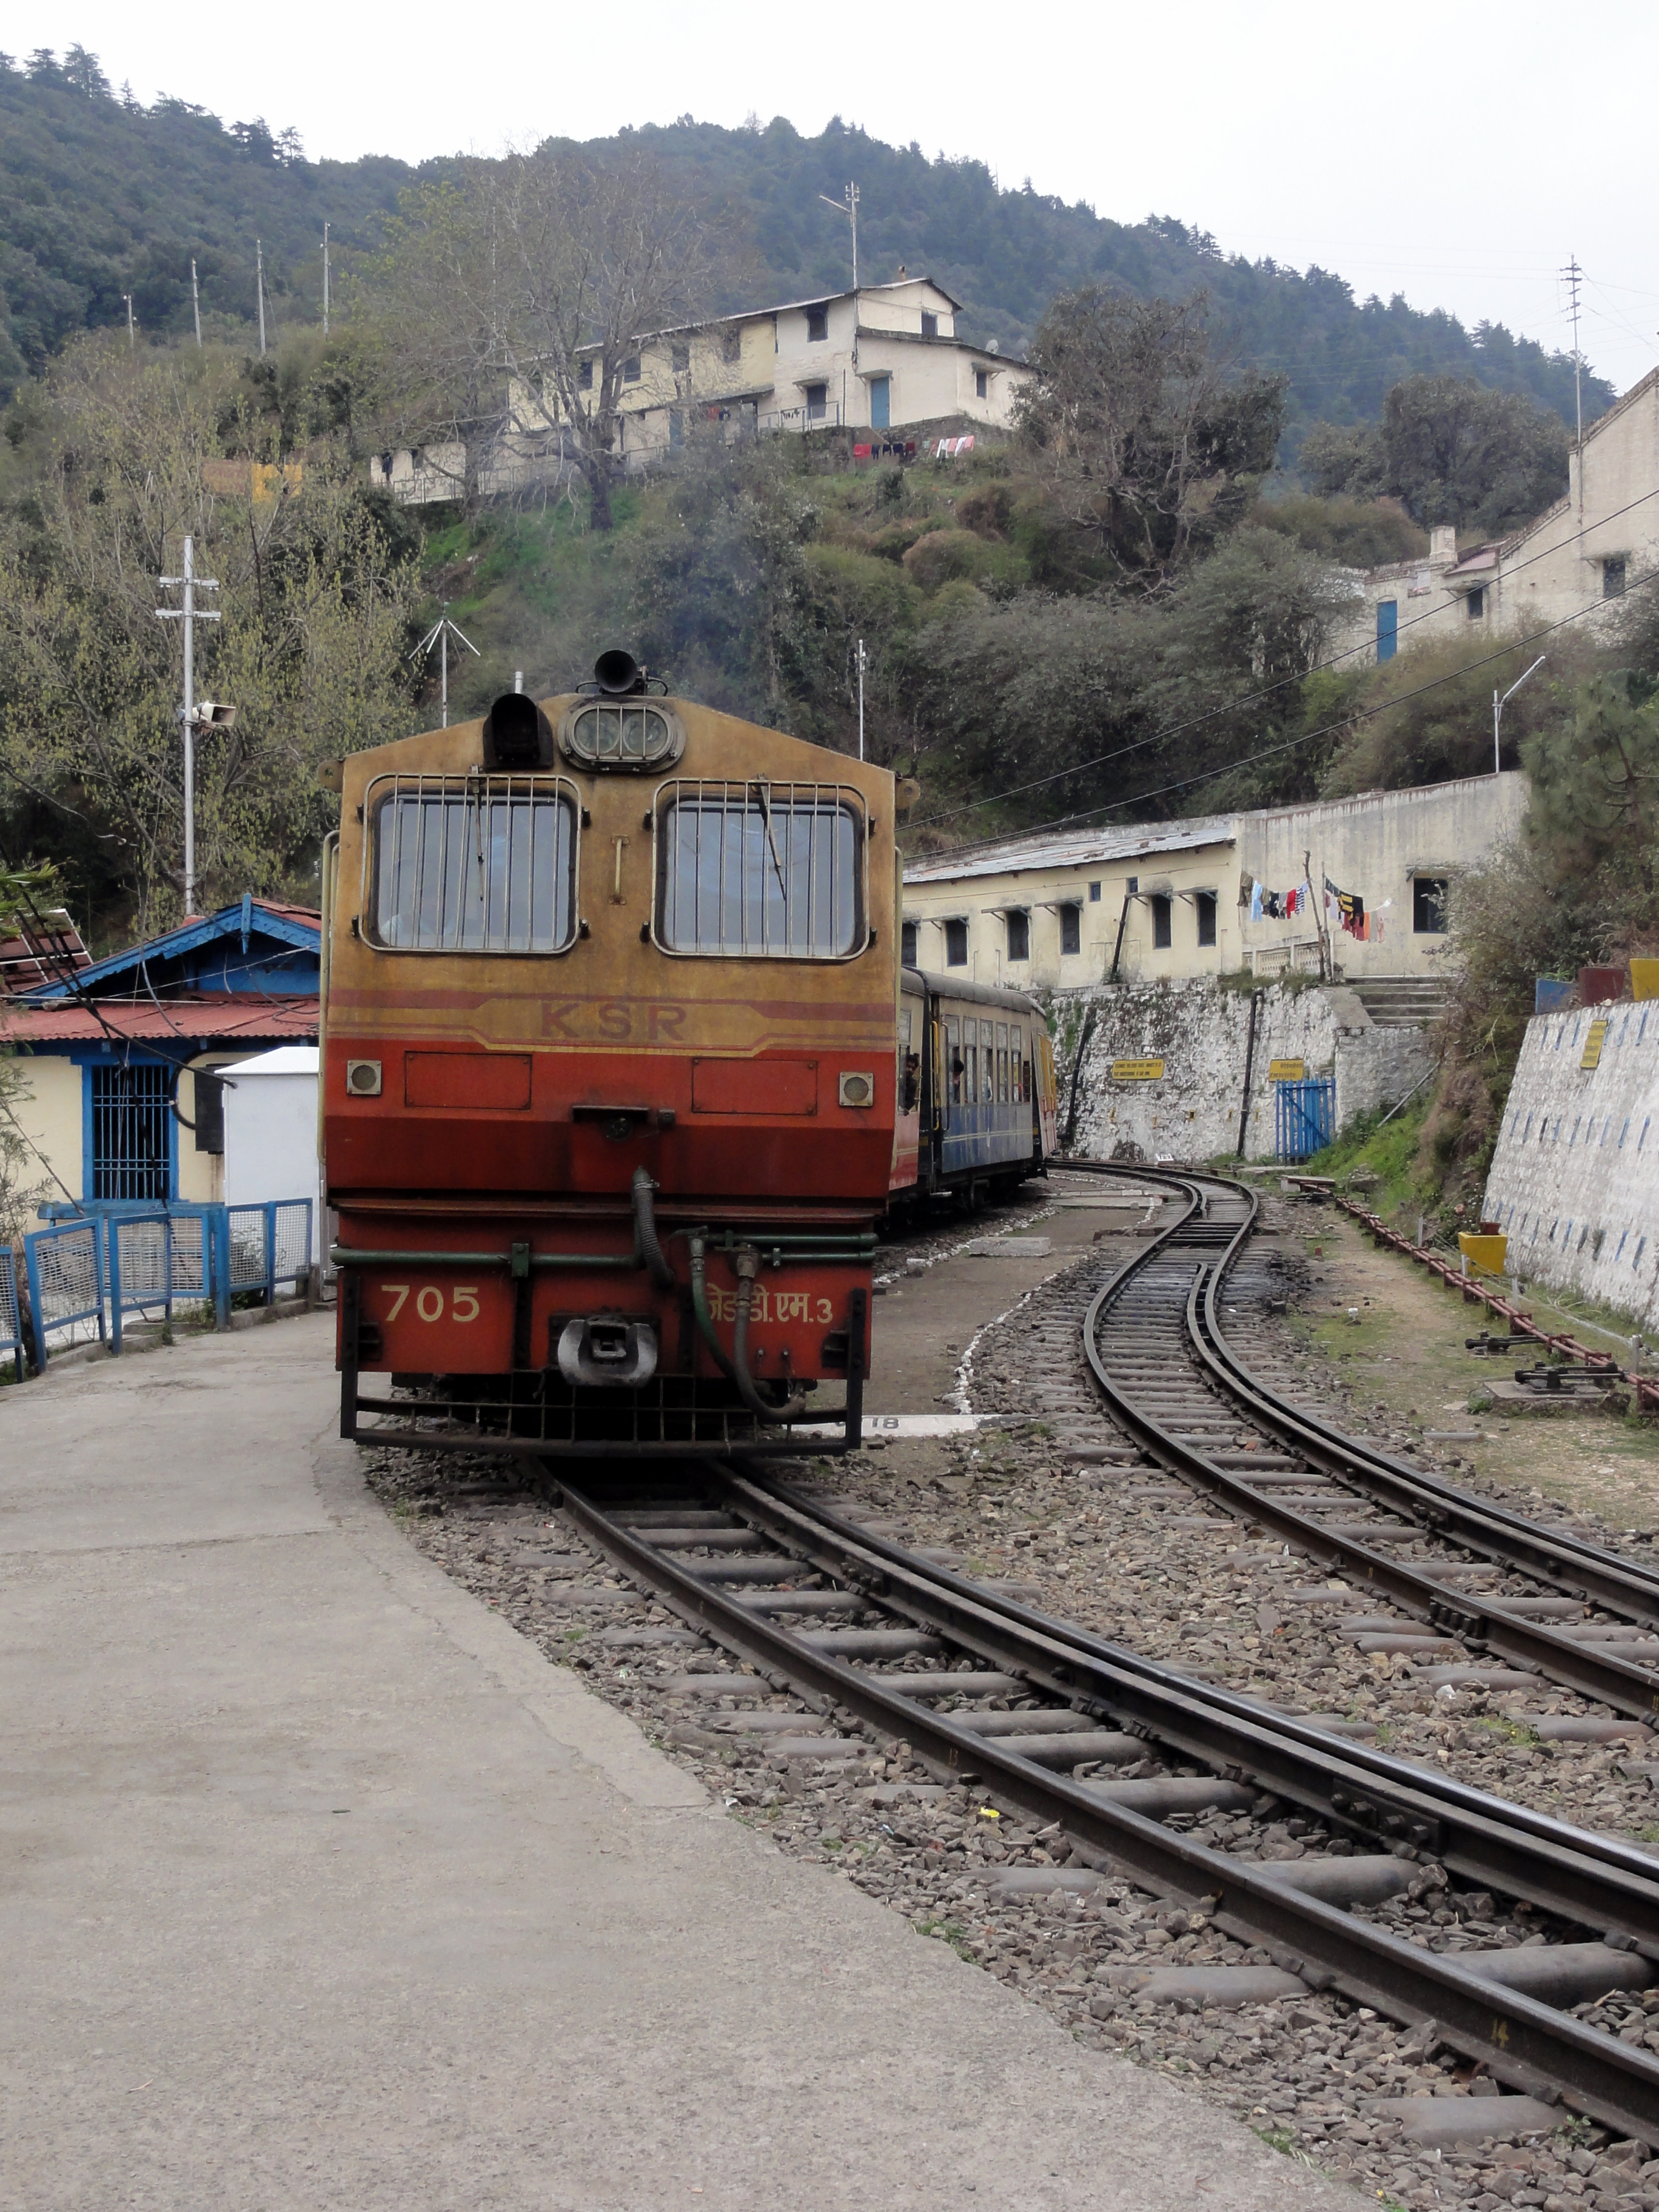 Plan Toys Train Joys : Kalka to shimla toy train a ride of joy rashminotes